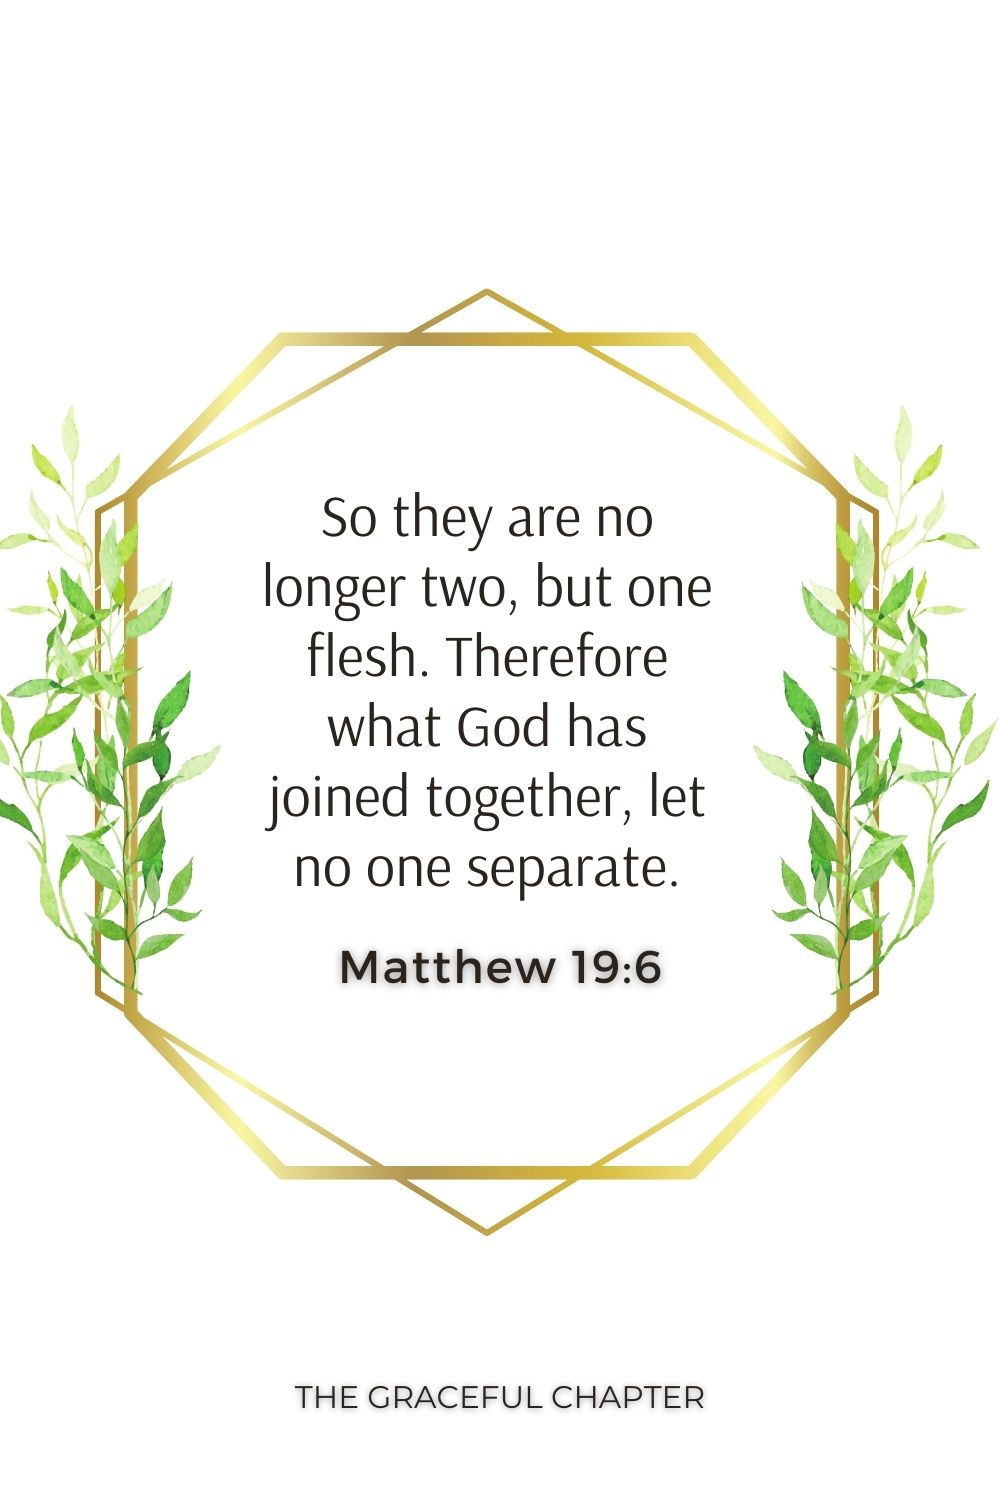 So they are no longer two, but one flesh. Therefore what God has joined together, let no one separate. Matthew 19:6